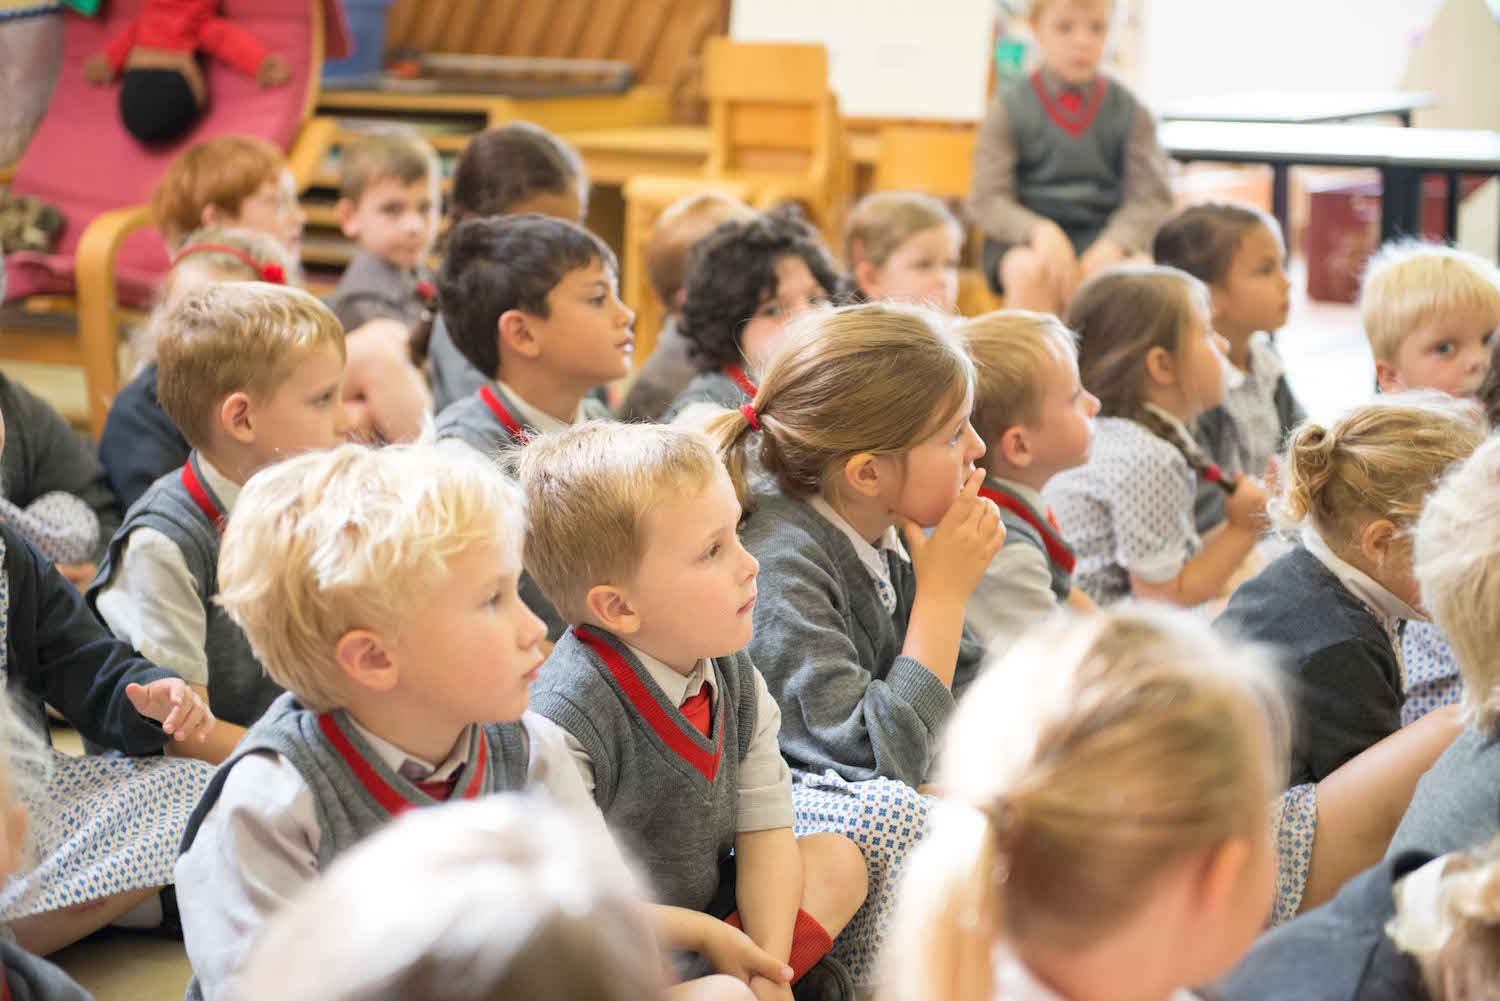 Class sizes are capped at 15 at Sompting Abbotts Preparatory School